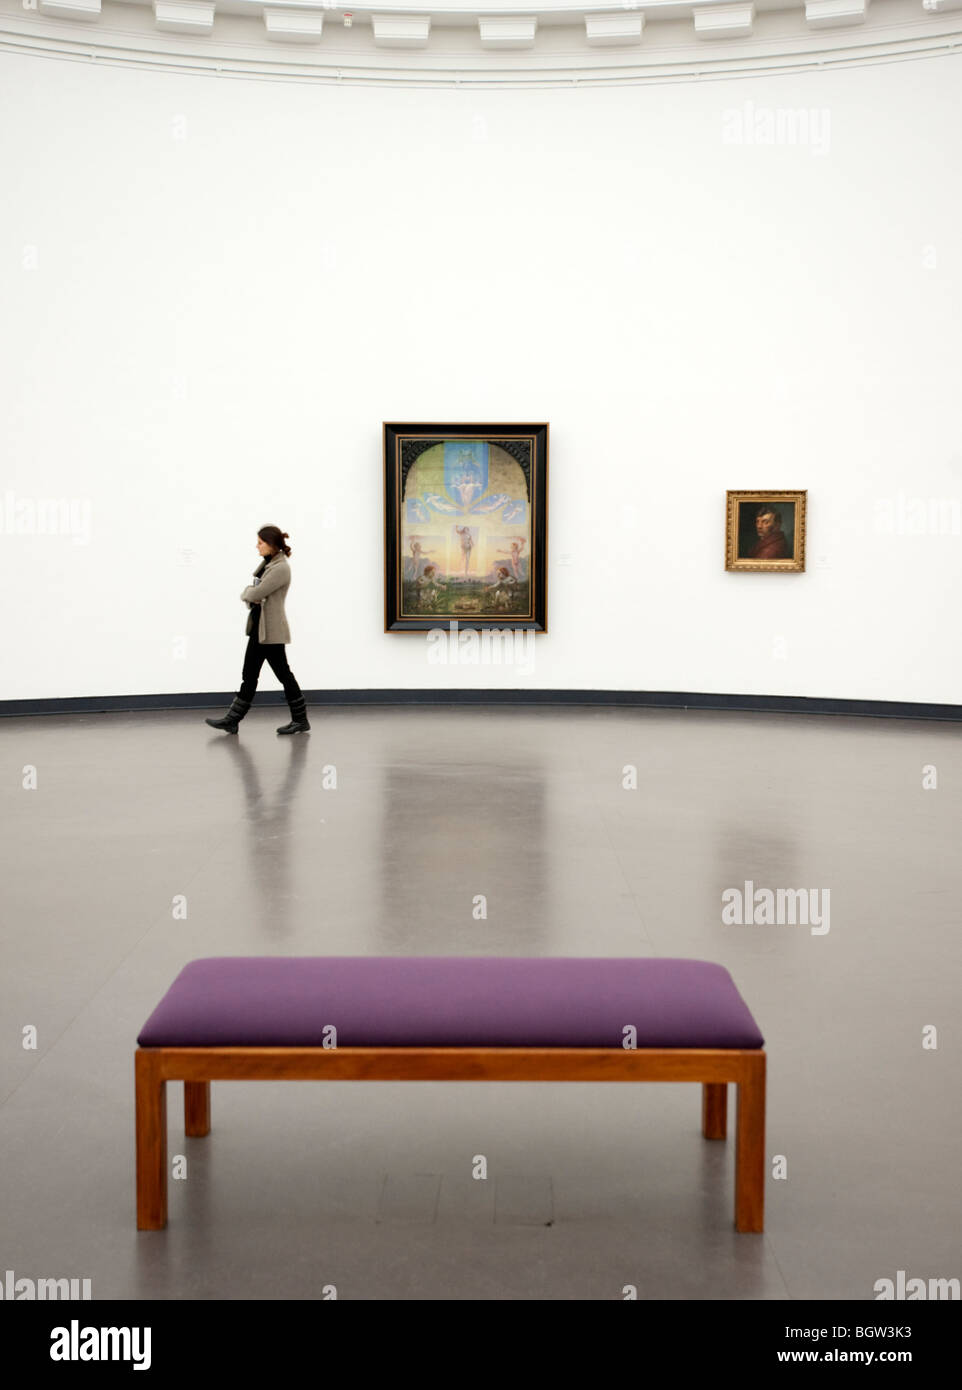 The Kunsthalle art gallery in Hamburg Germany - Stock Image